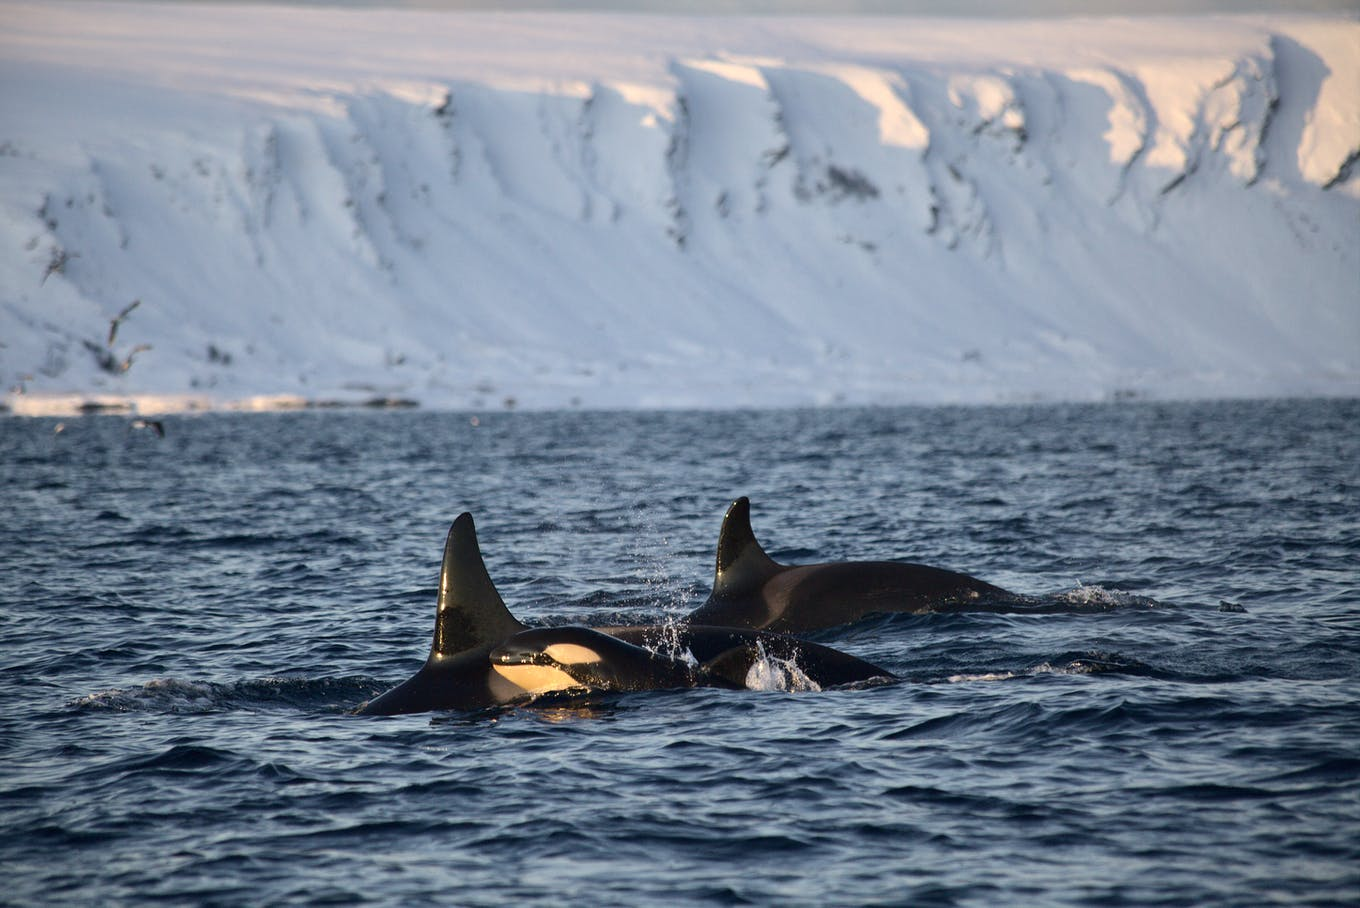 killerwhale and its calf